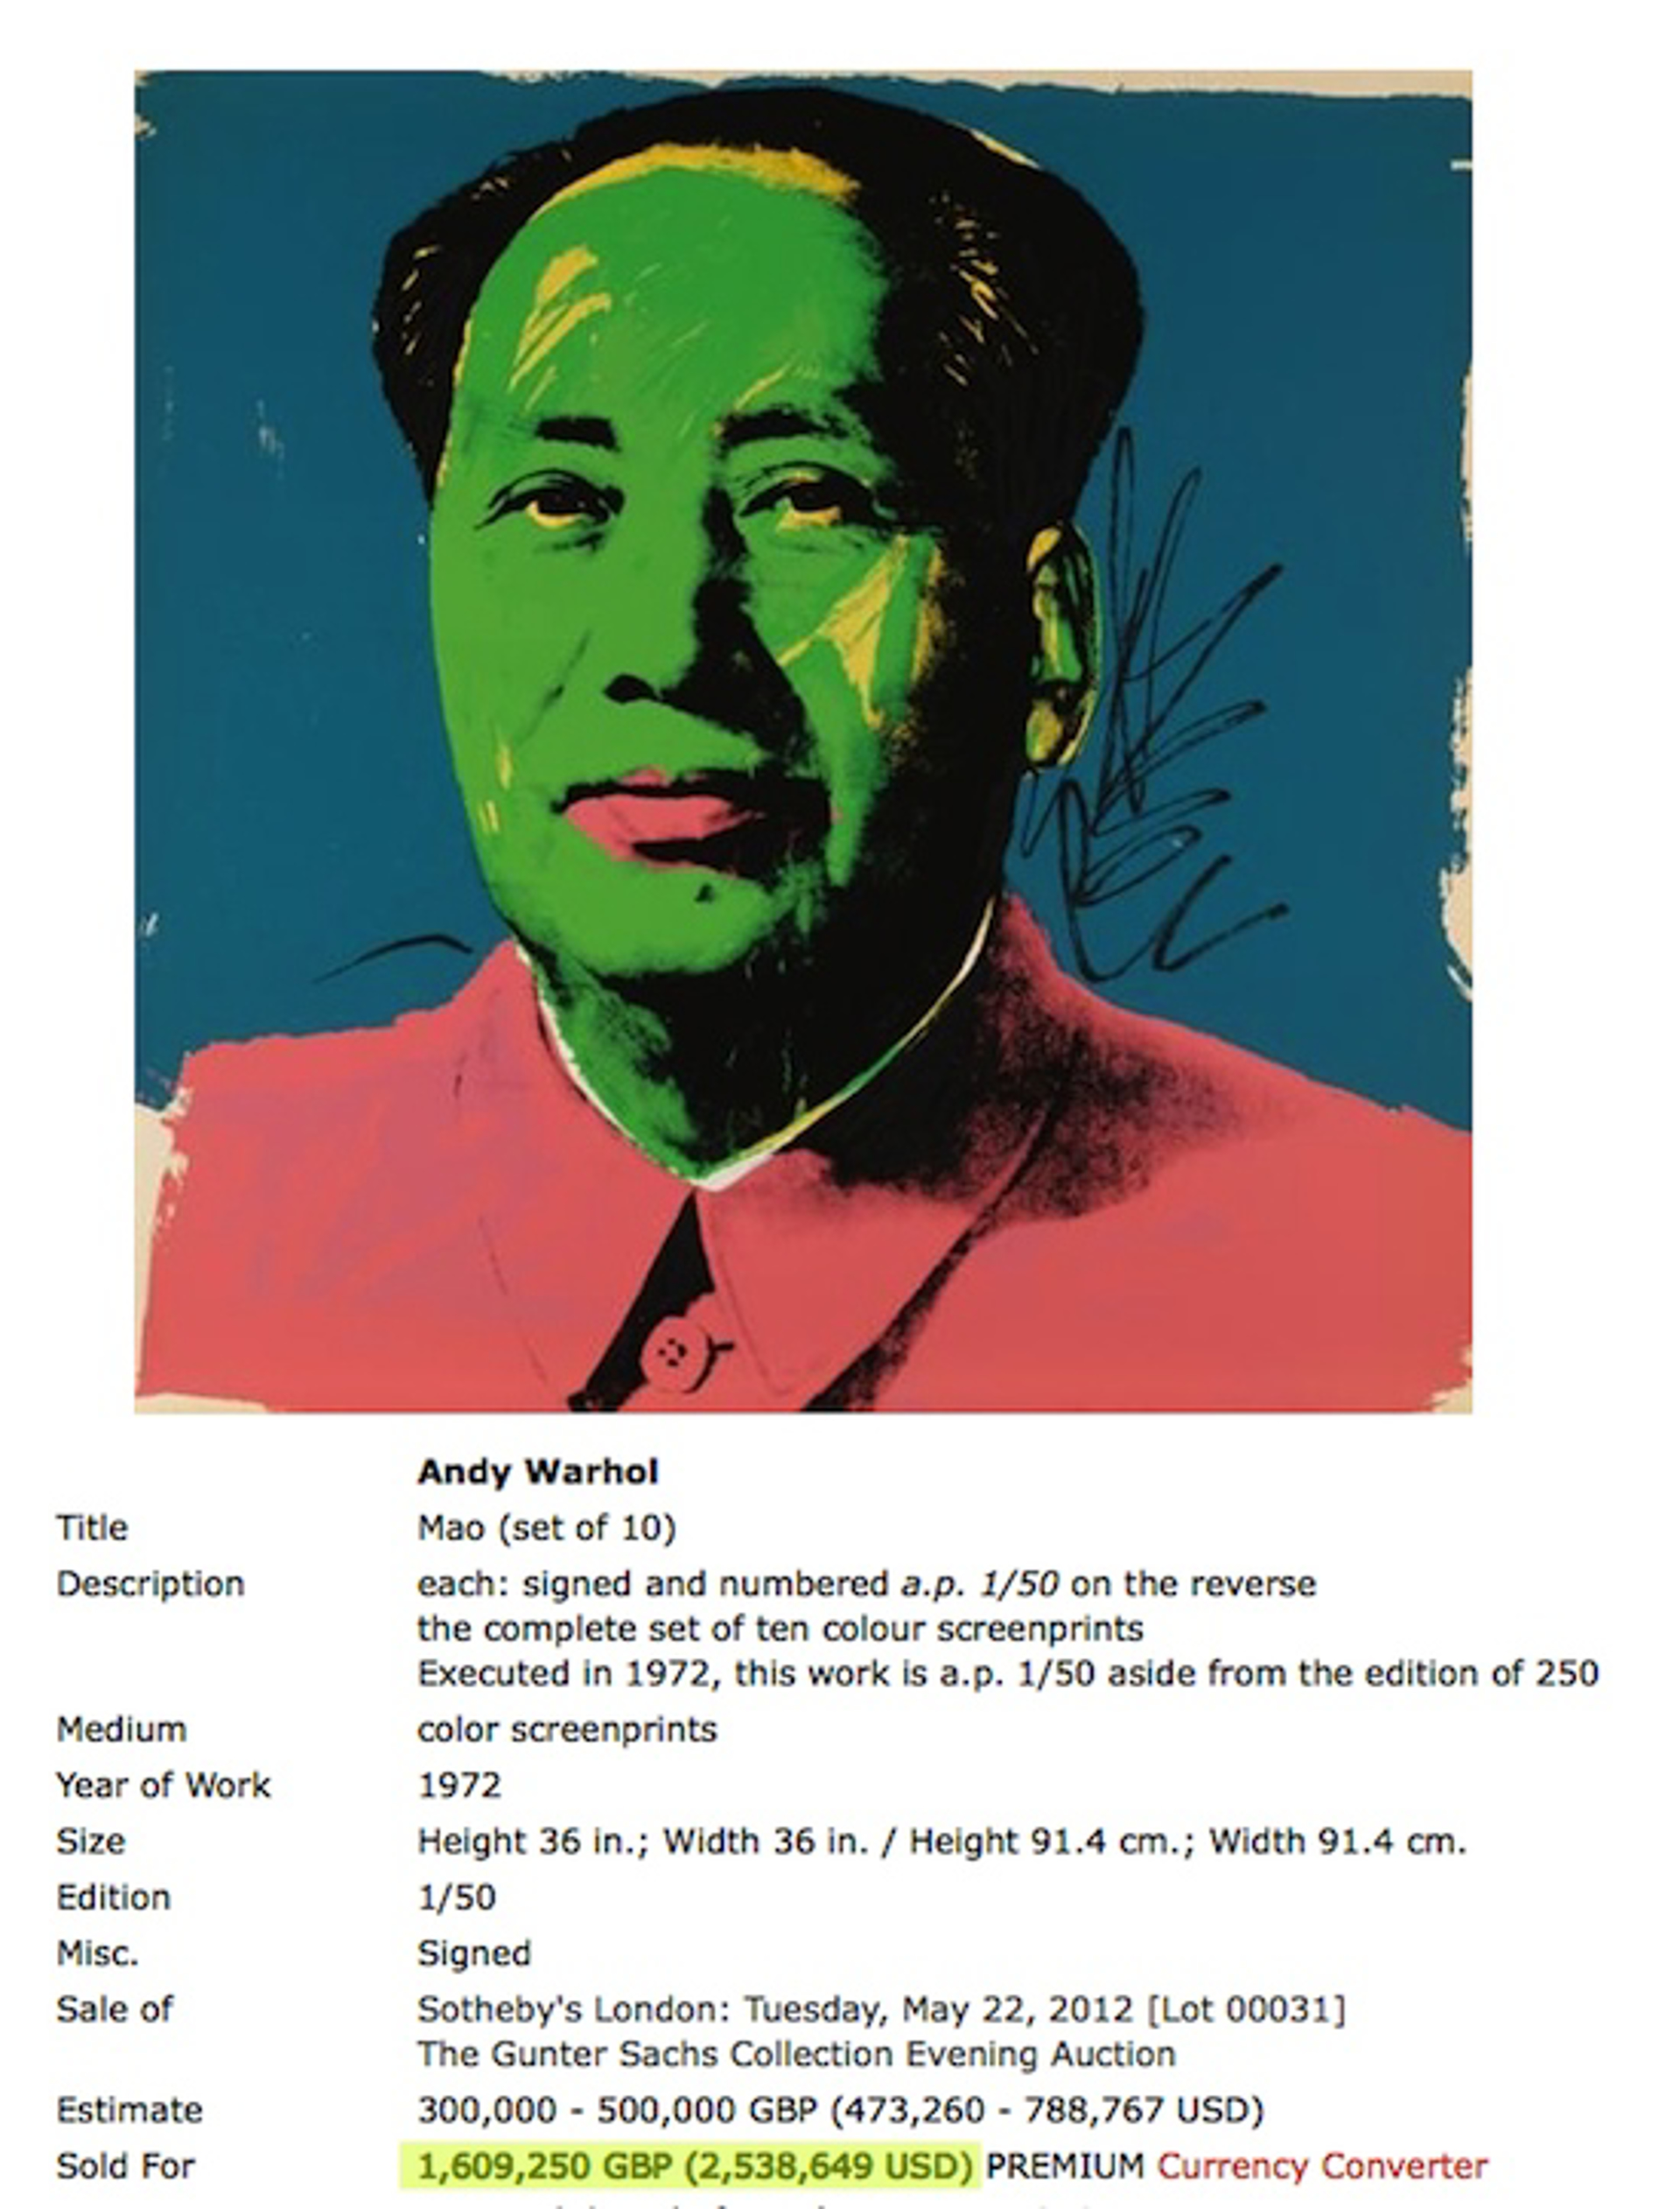 Mao (original suite, 10 works of art) by Andy Warhol